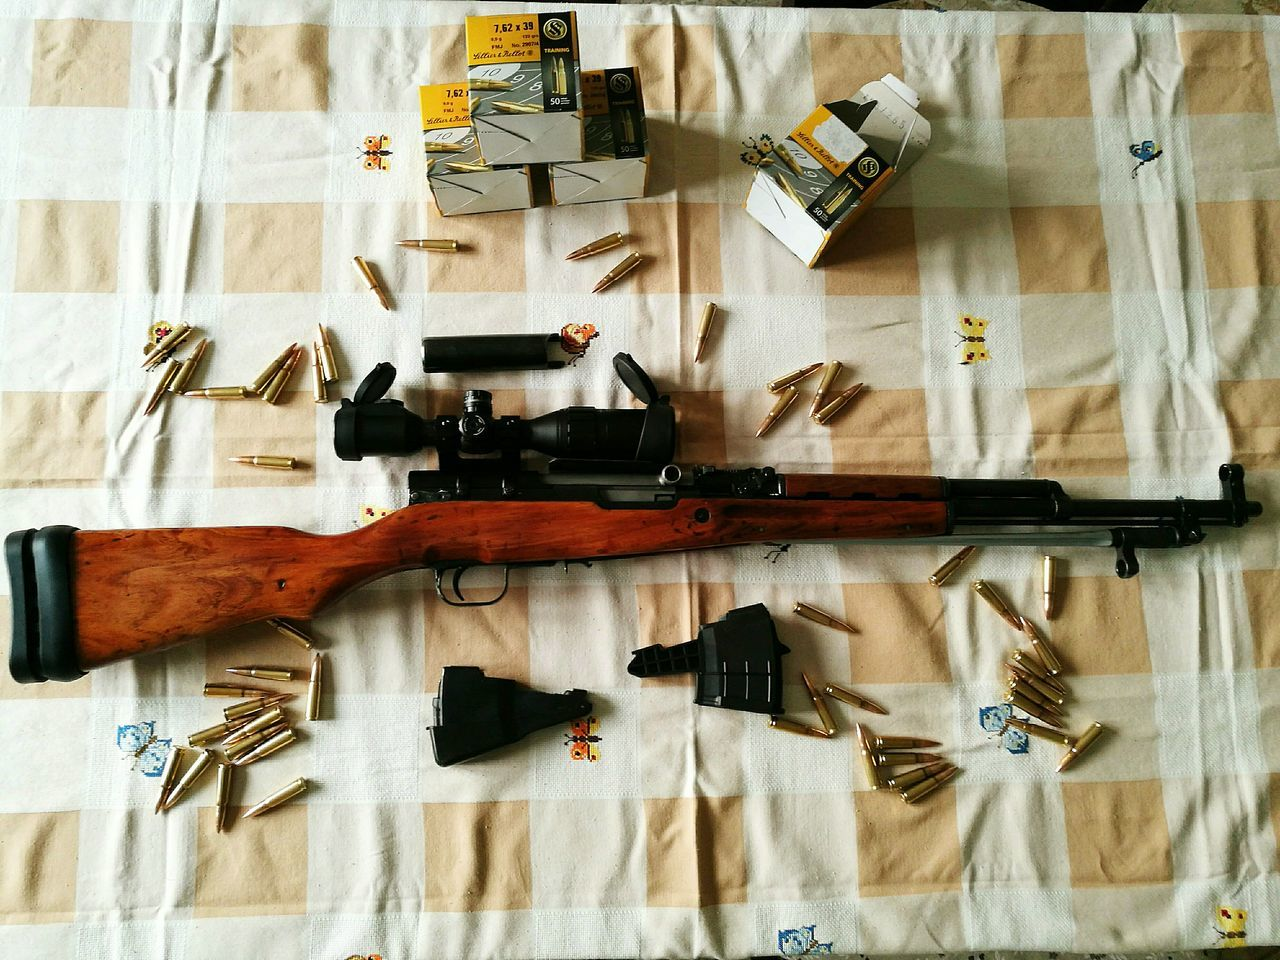 Collection Hobbies No People Gun Lifestyles Langbart Rifle Ex Ordinanza Sks